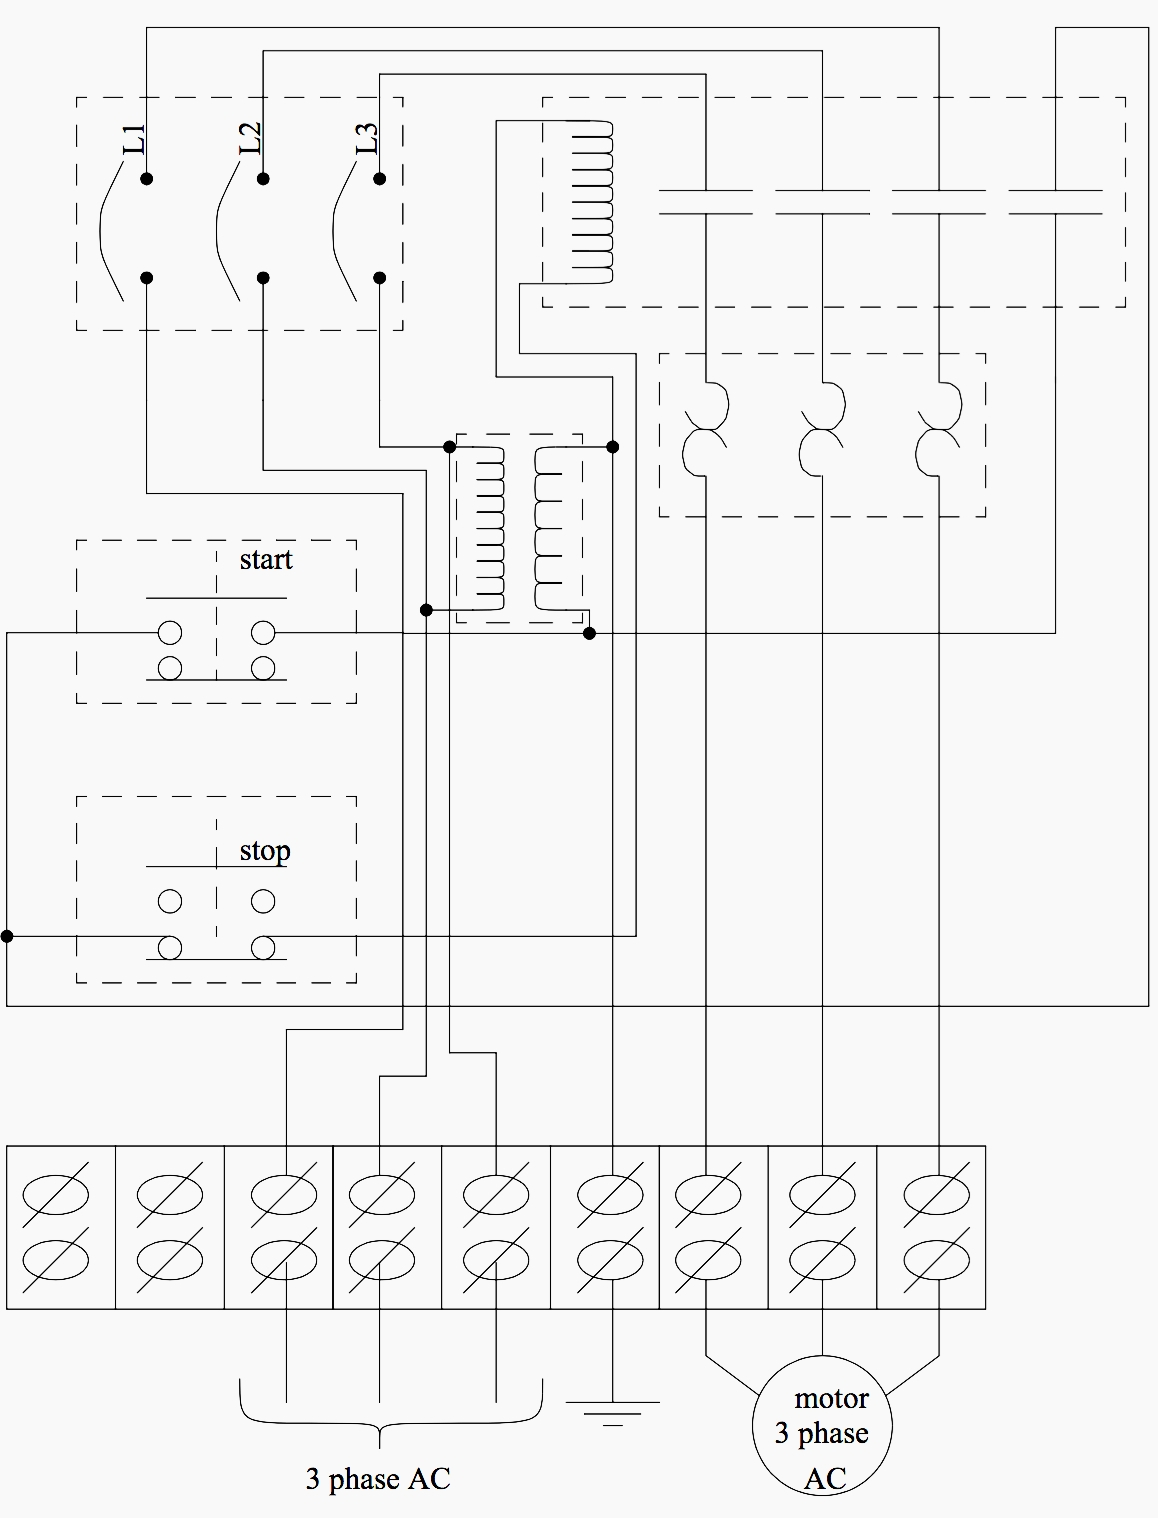 Plc Wire Diagram Example Wiring Data Im Looking For A Sample Electrical And Switch Online Diagrams Symbols